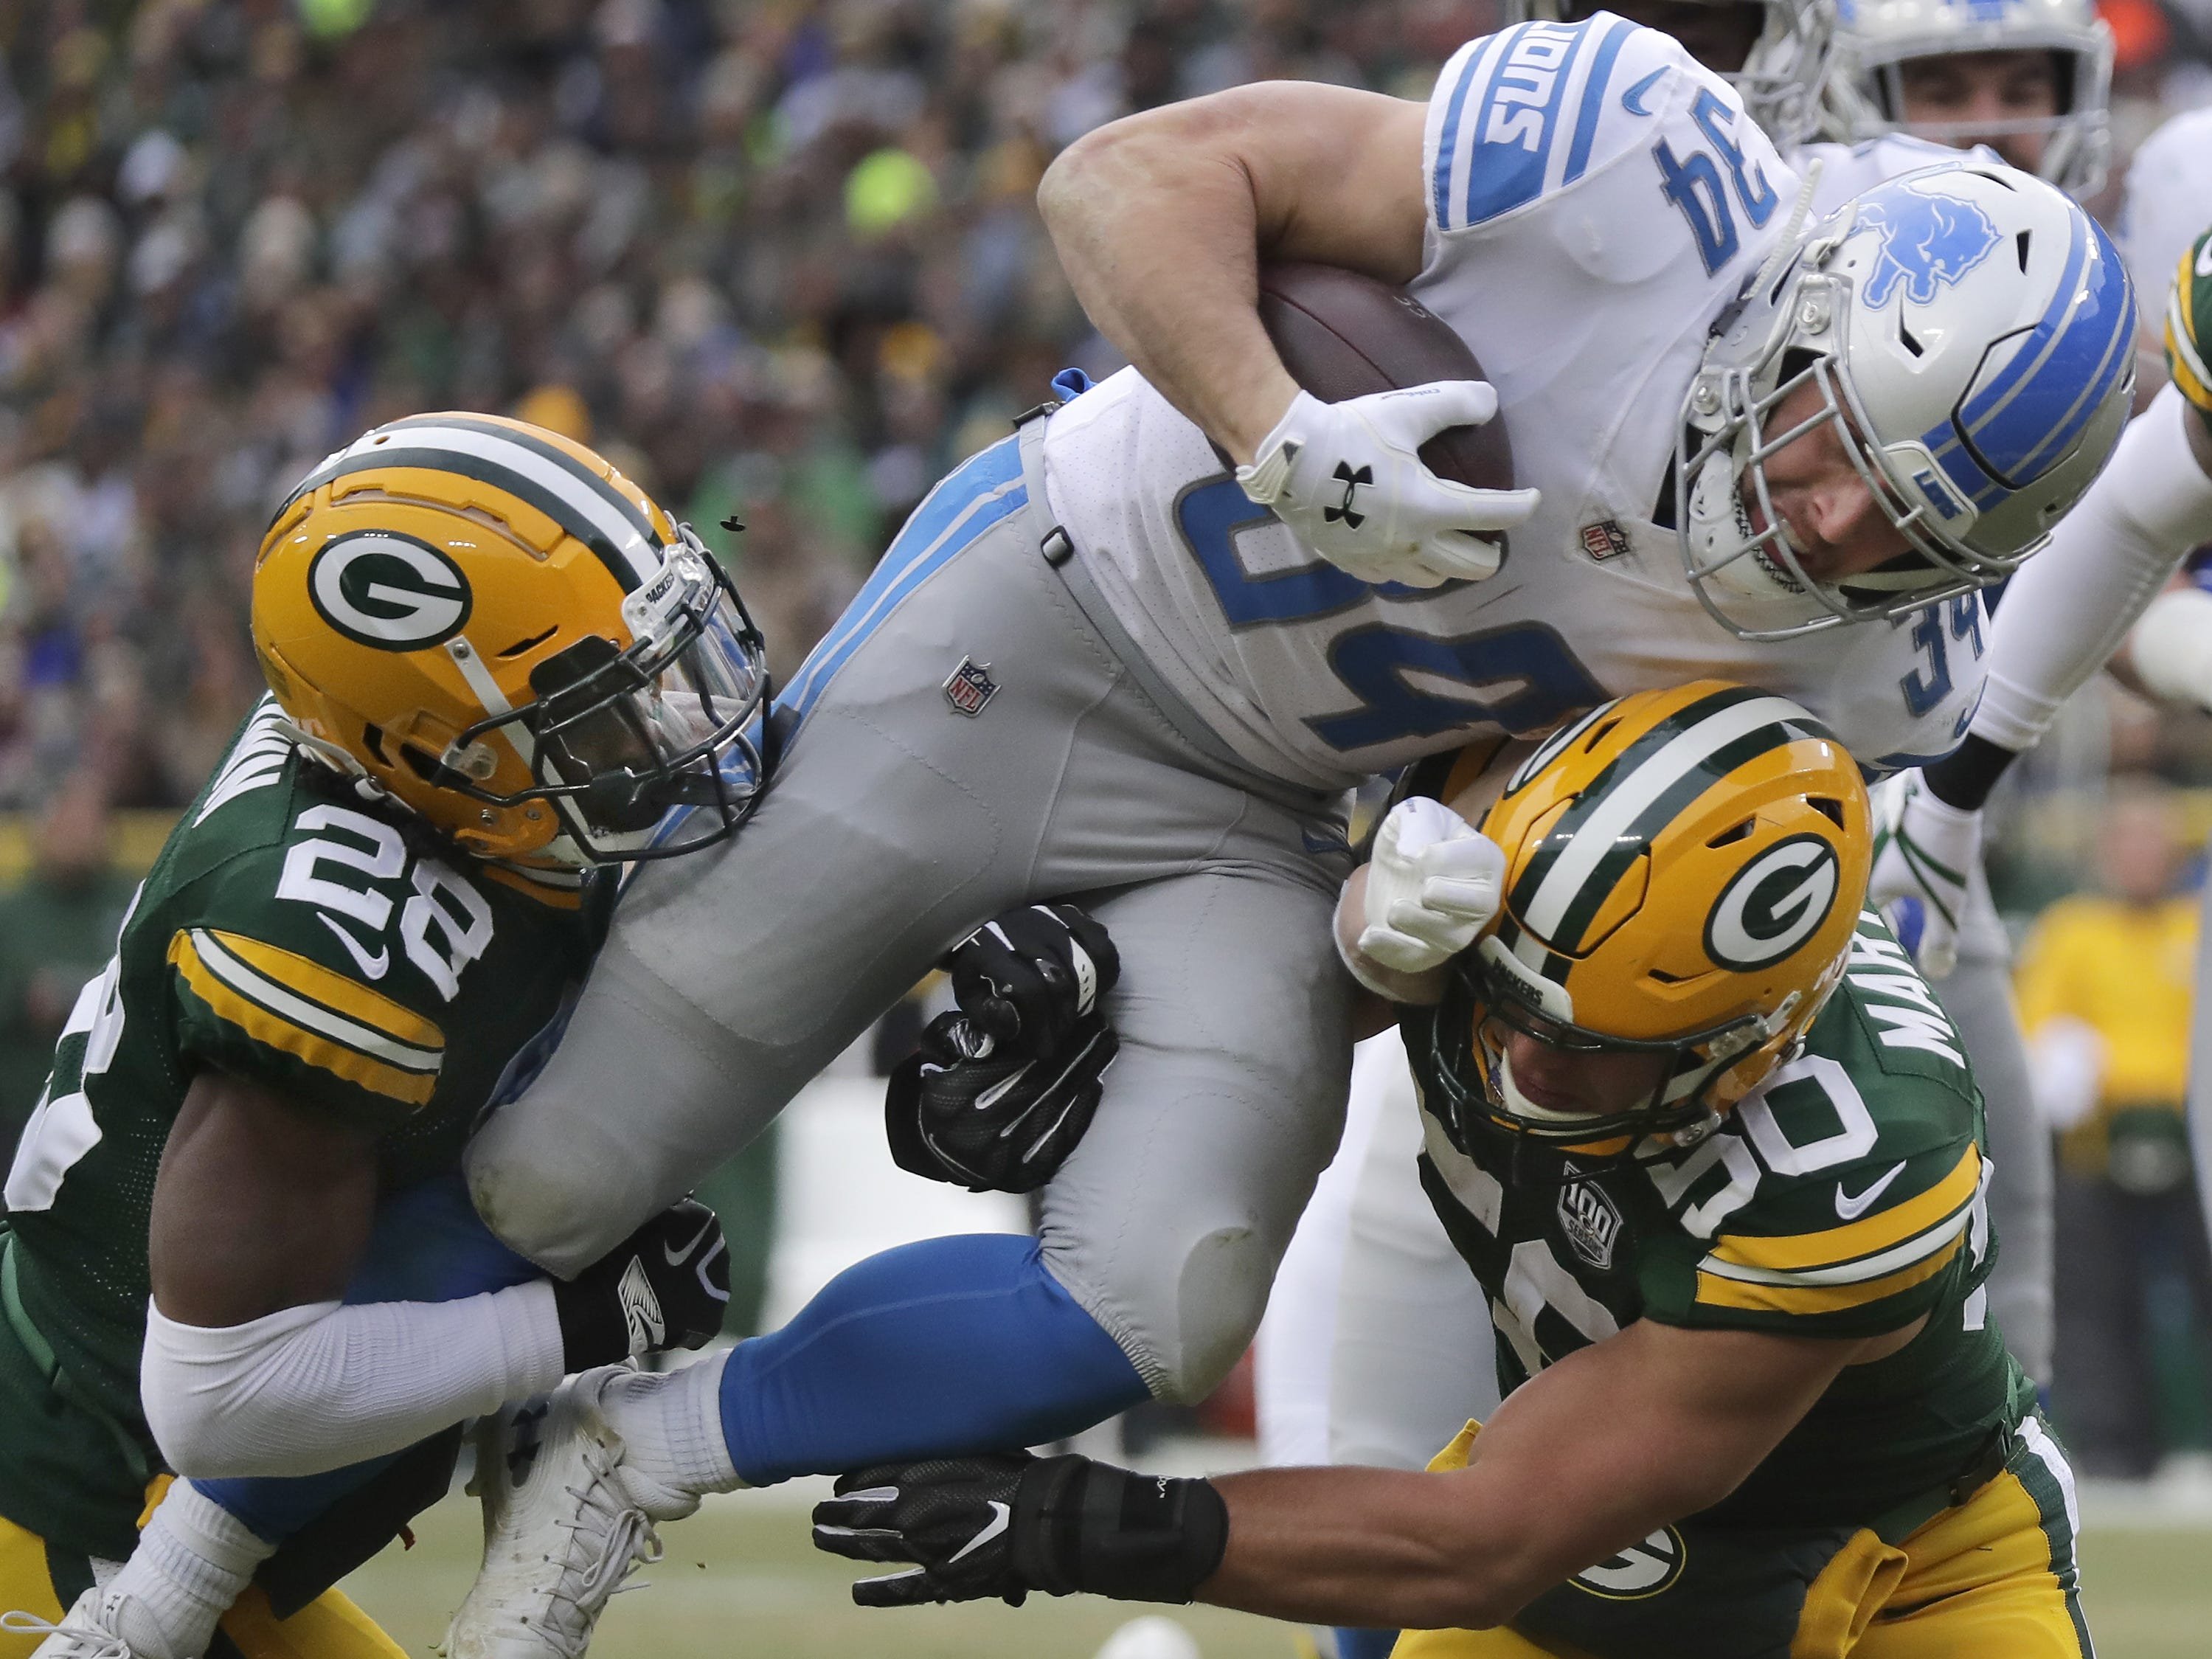 Green Bay Packers defensive back Tony Brown and Blake Martinez make a stop of Detroit Lions running back Zach Zenner on the goal line in the first half of their football game on Sunday, December 30, 2018, at Lambeau Field in Green Bay, Wis. Wm. Glasheen/USA TODAY NETWORK-Wisconsin.